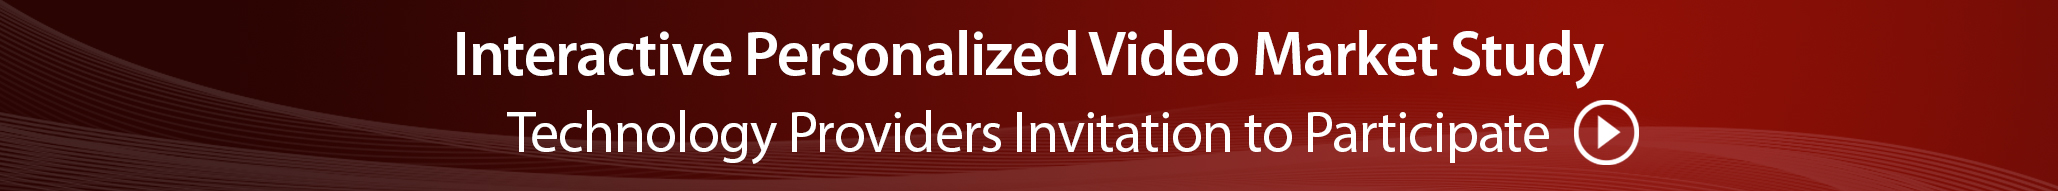 interactive-personalized-video-market-study-banner